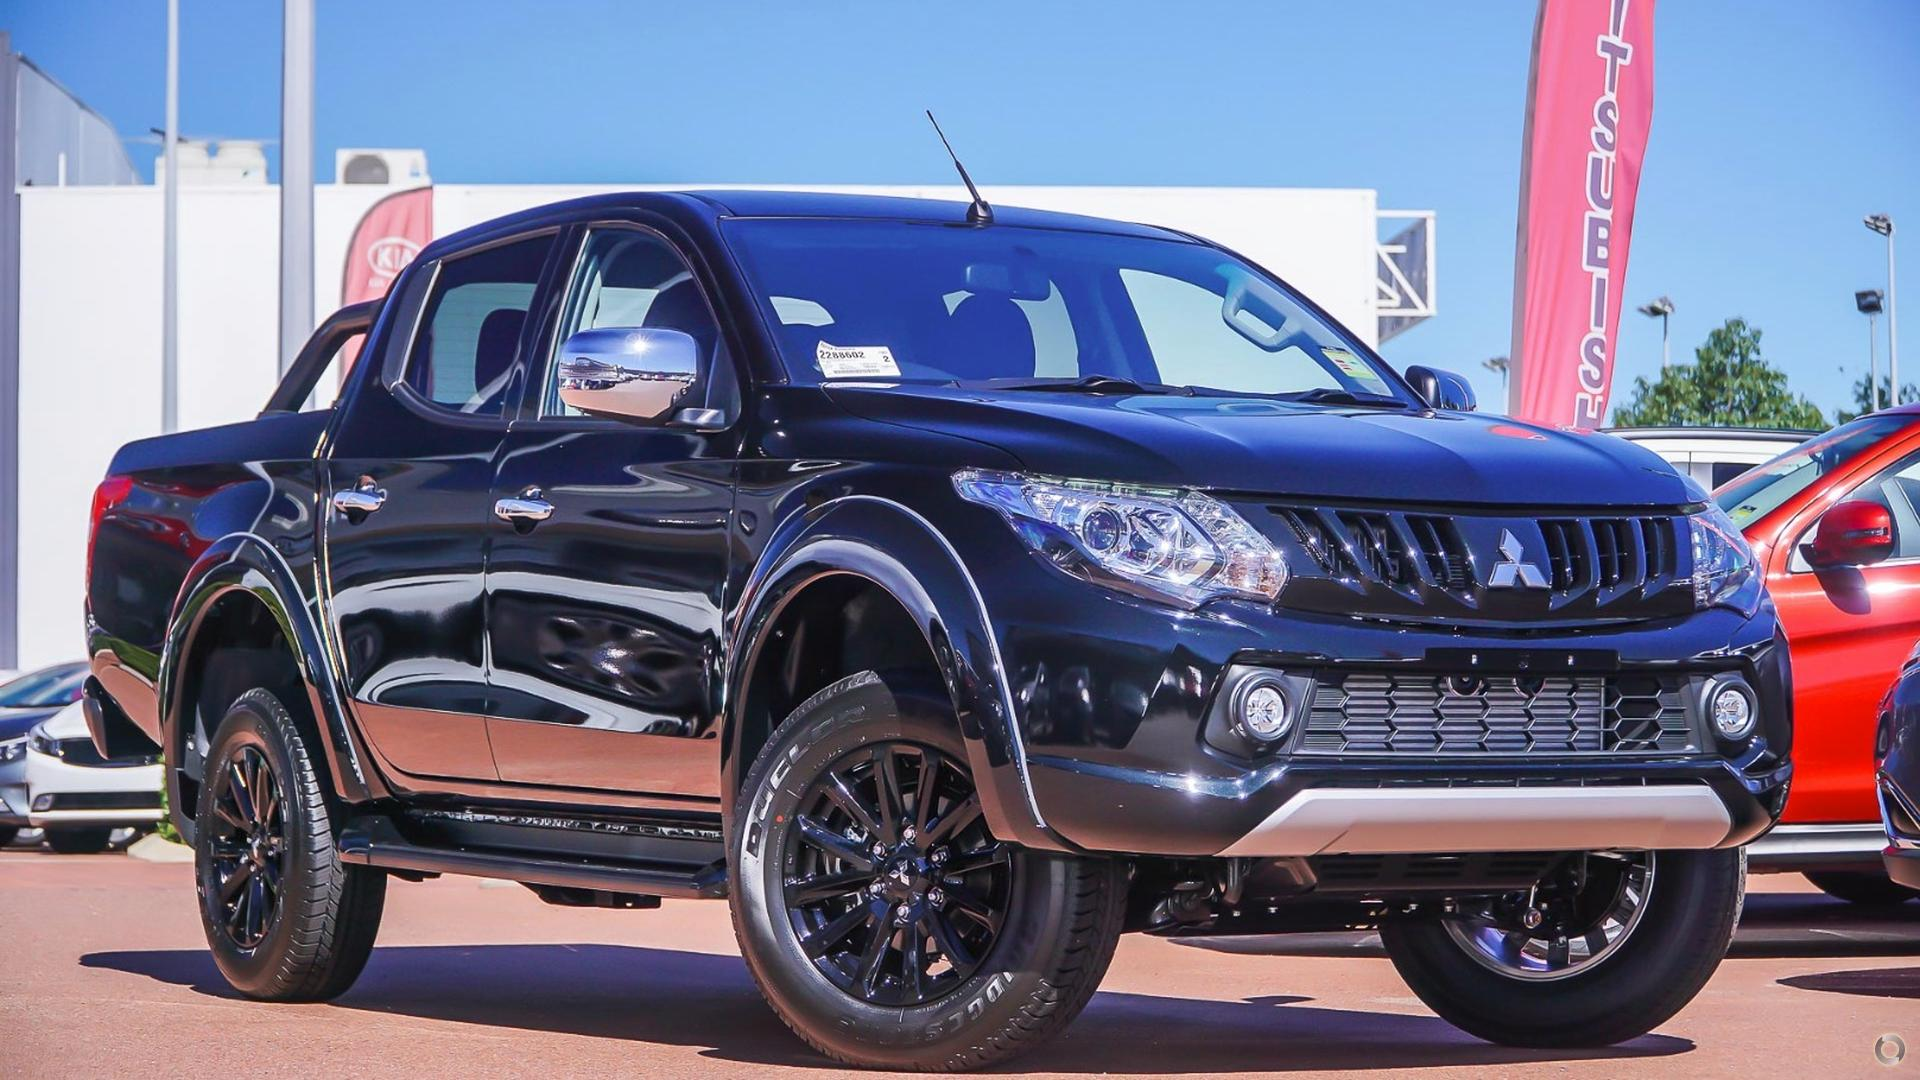 2017 Mitsubishi Triton Gls Sports Edition